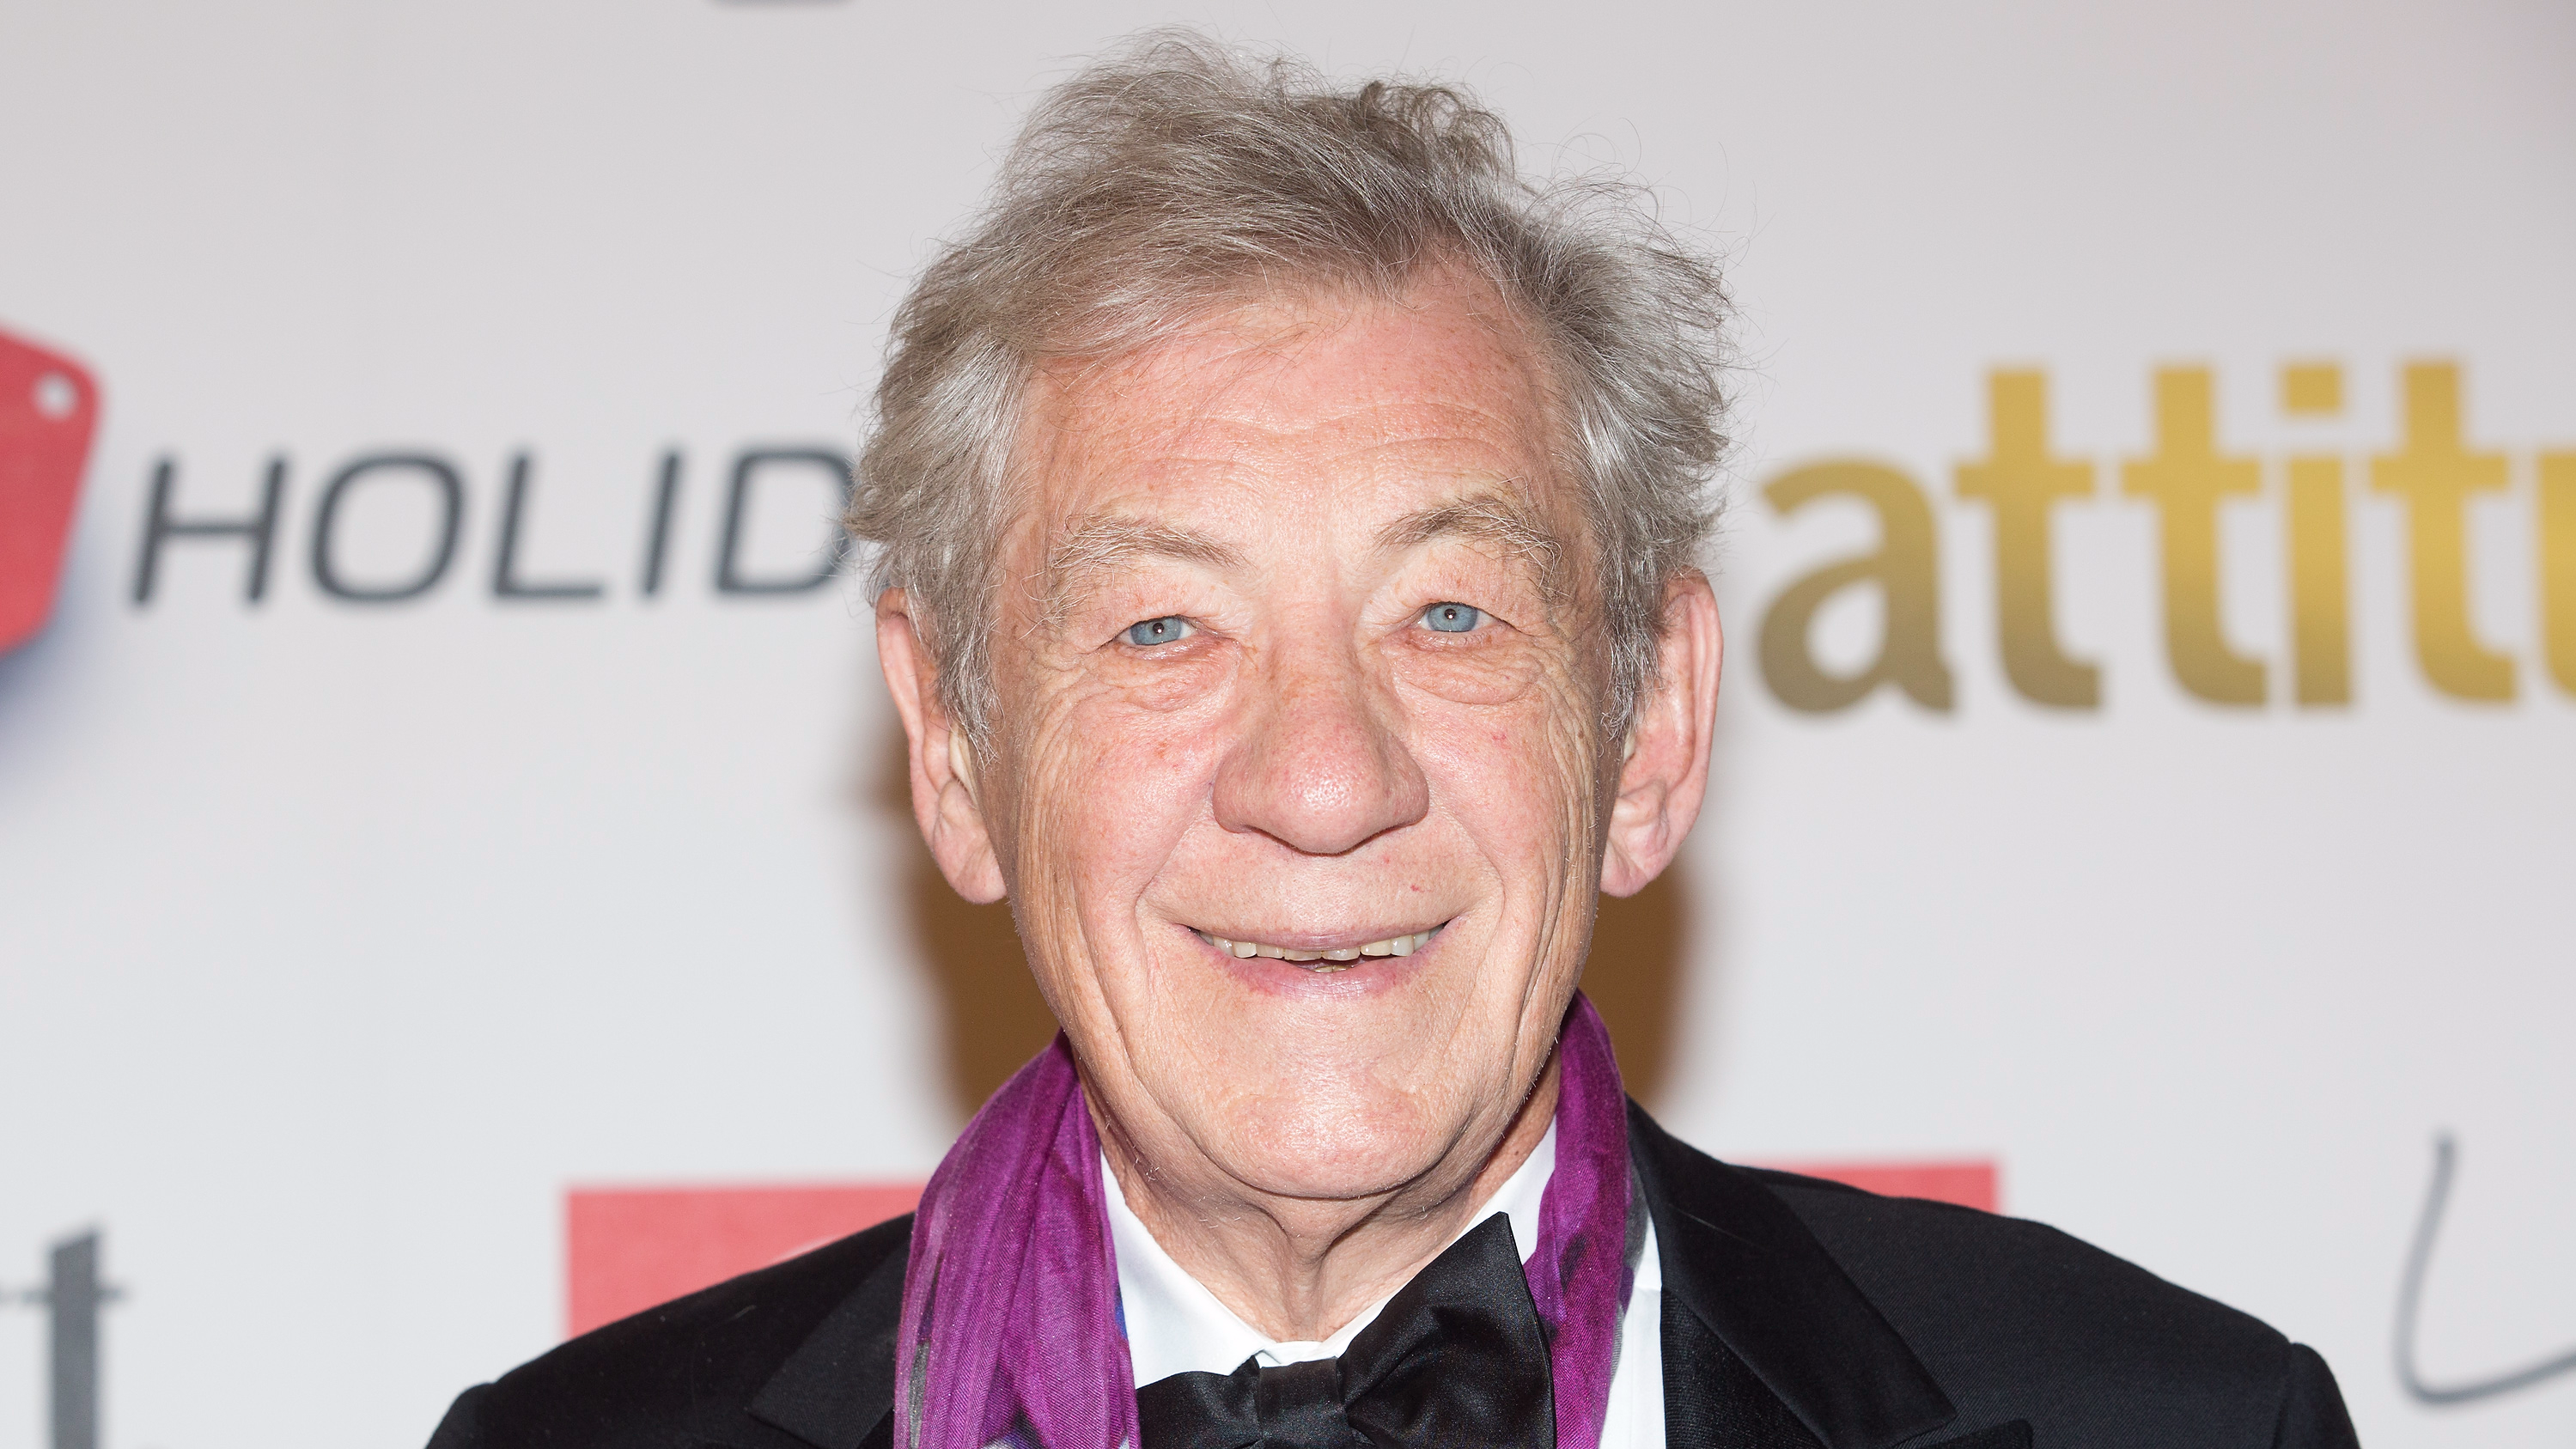 Sir Ian McKellen Is Interested In Playing Gandalf For Amazon's Lord Of The Rings Series